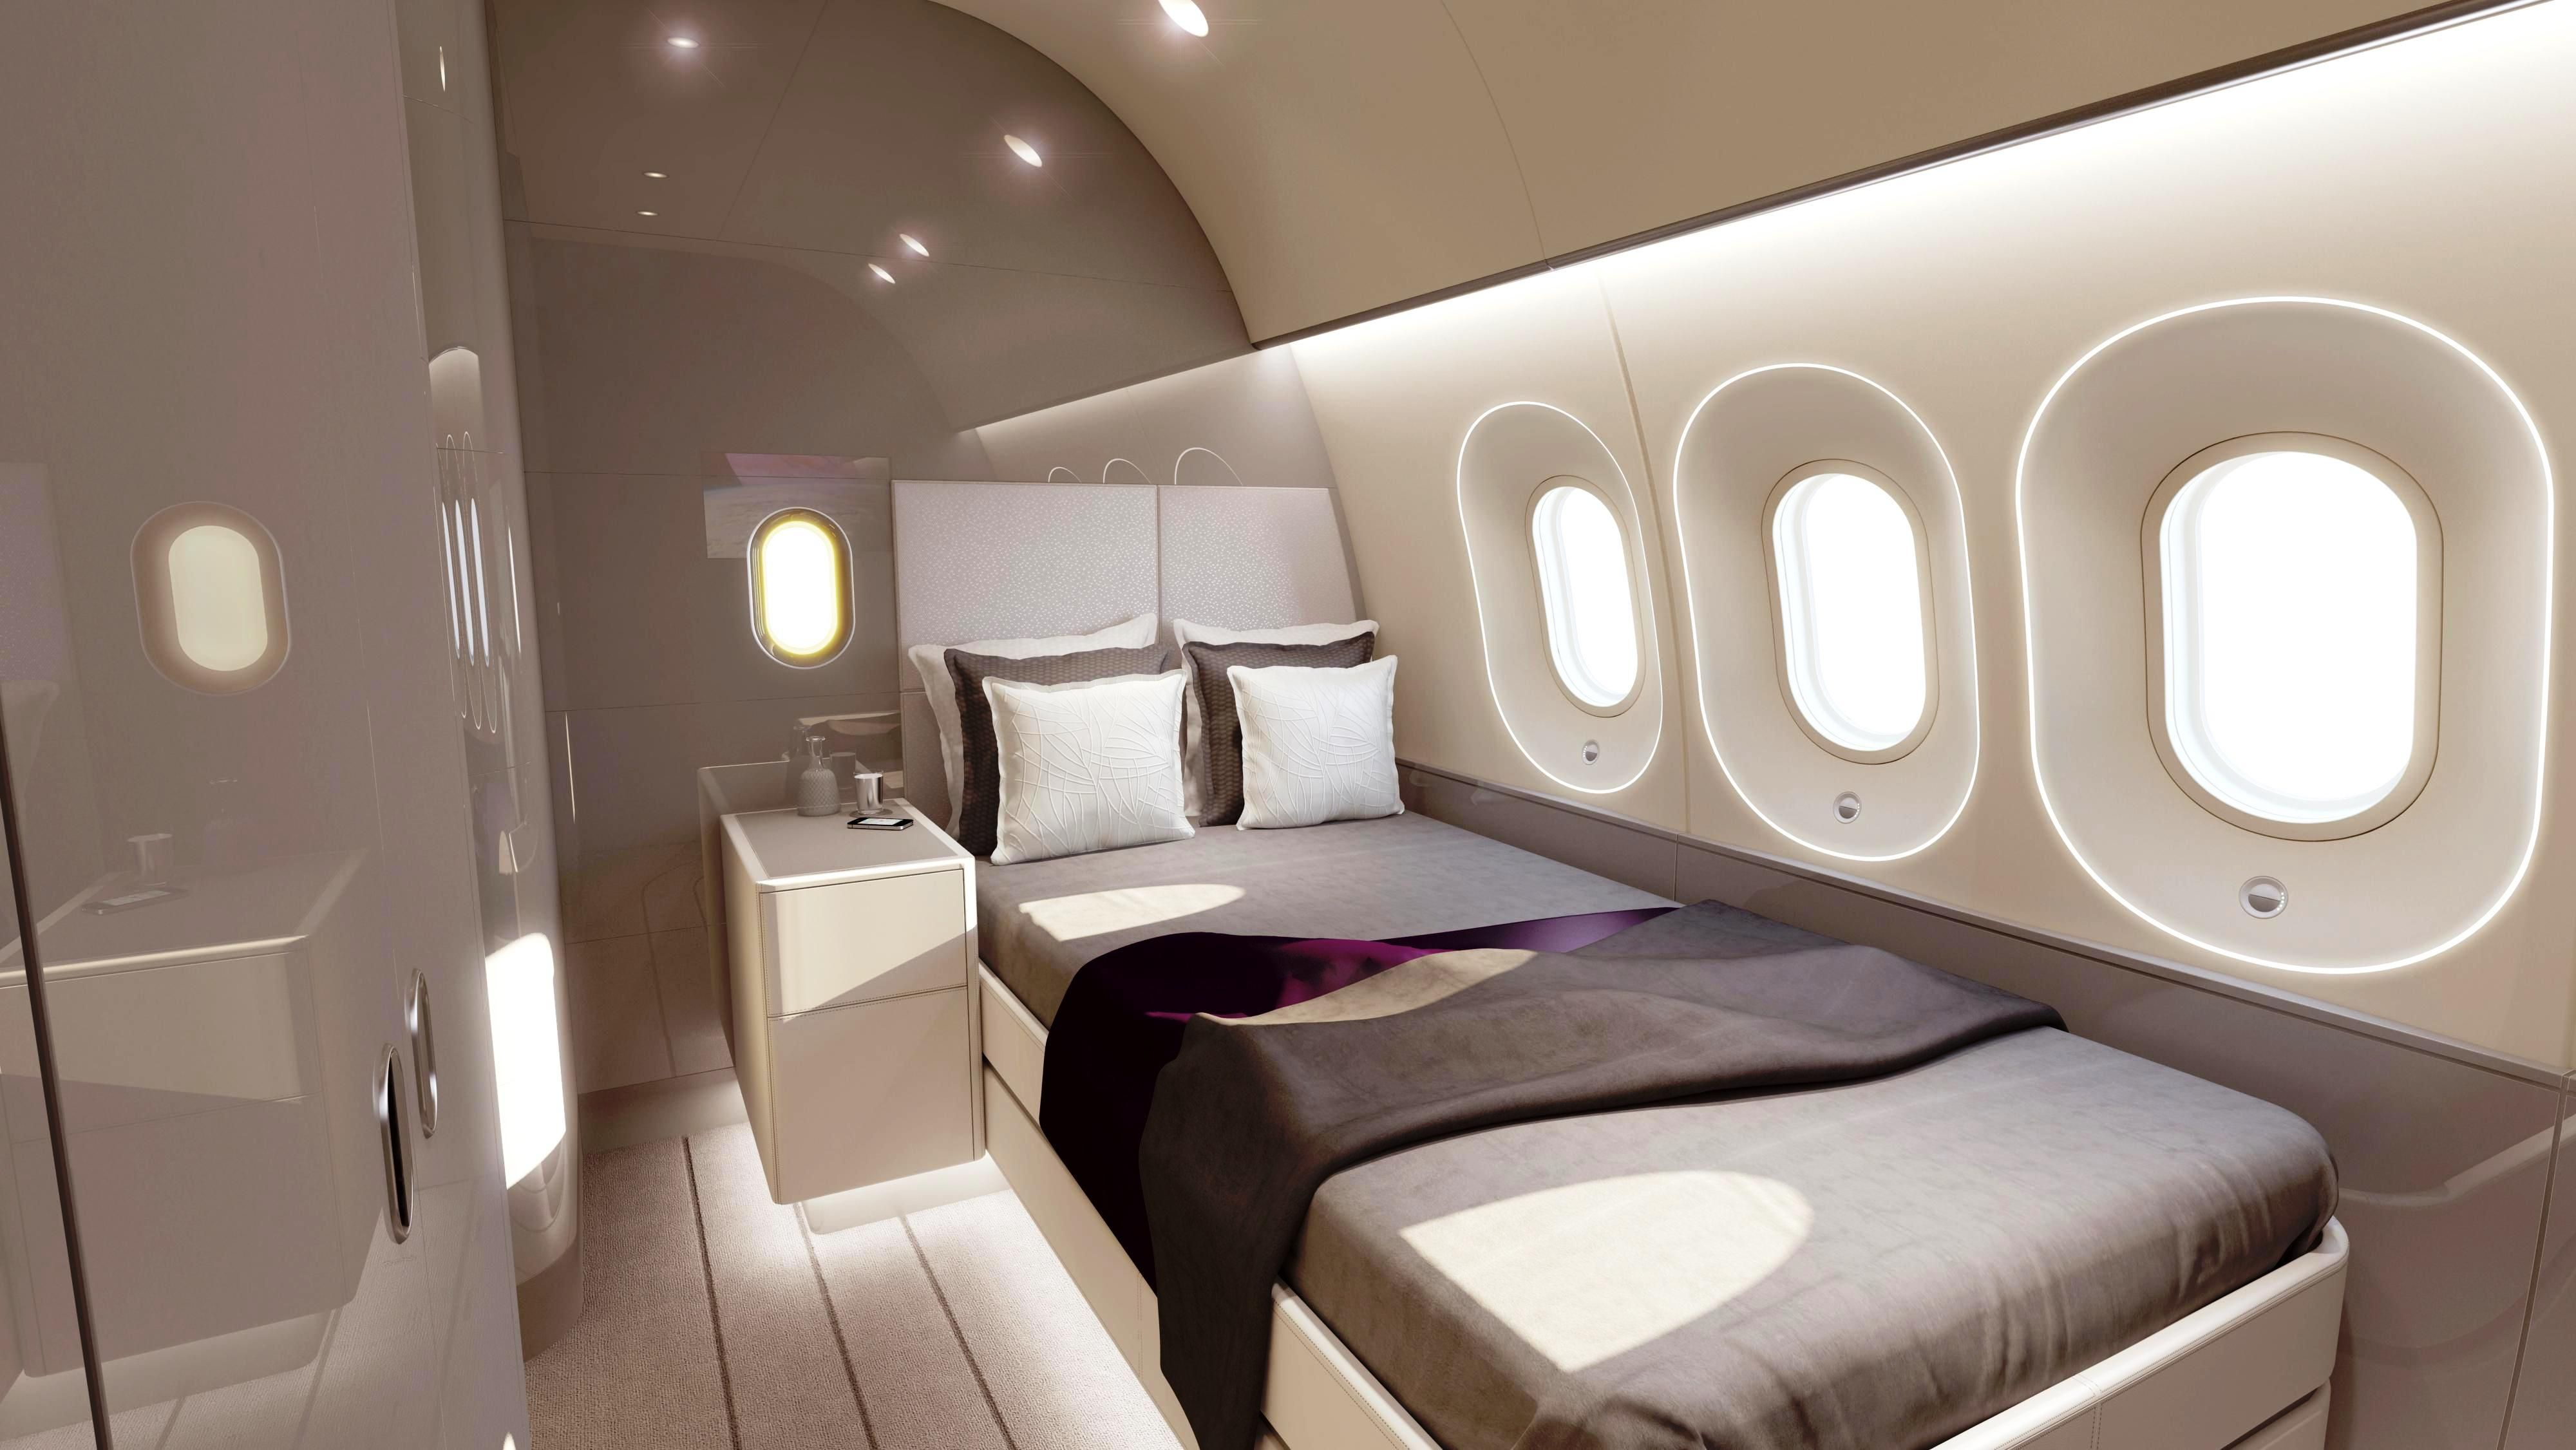 15 airplane and airport hotel room inspired bedroom designs rilane we aspire to inspire - Masterschlafzimmerdesignplne